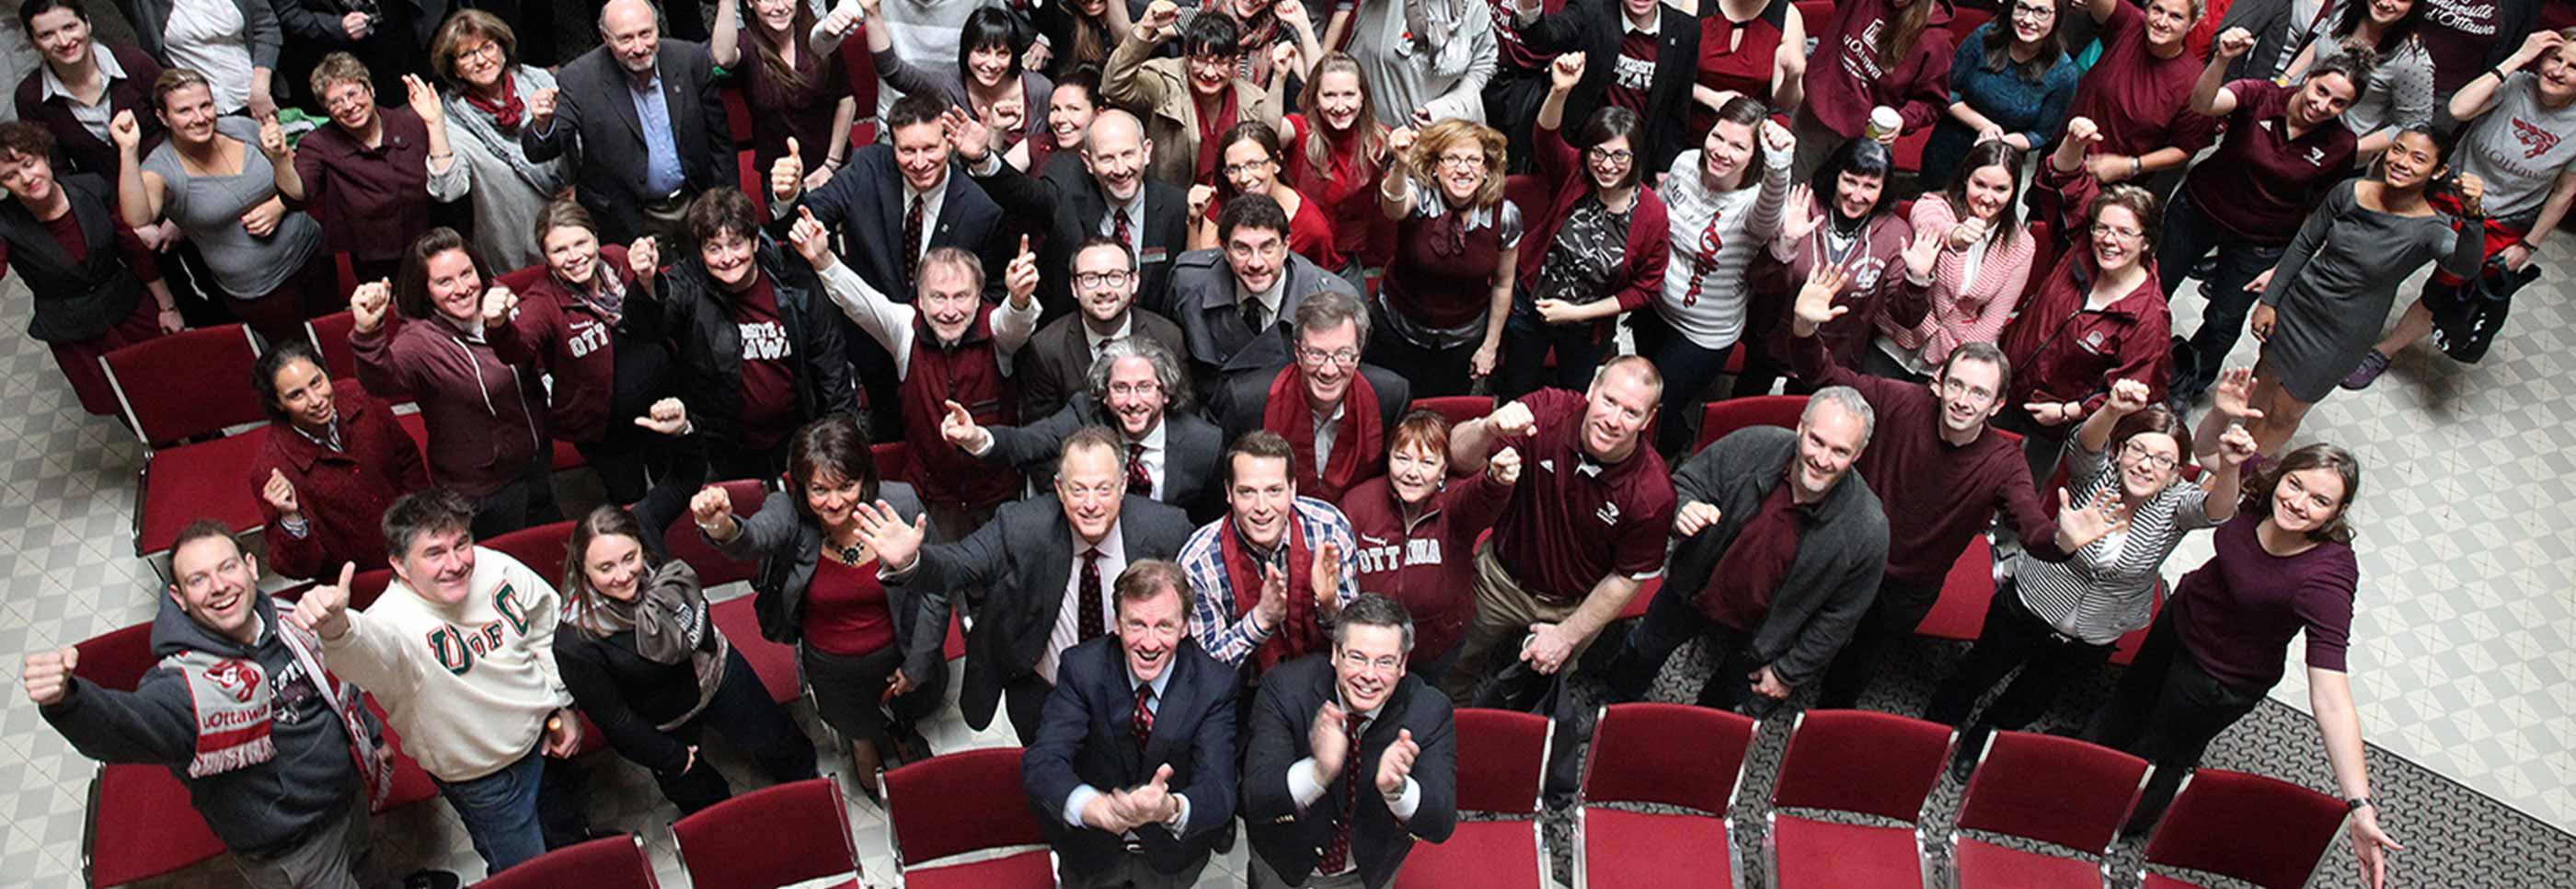 Photo of large group of alumni dressed in garnet and grey clothing.